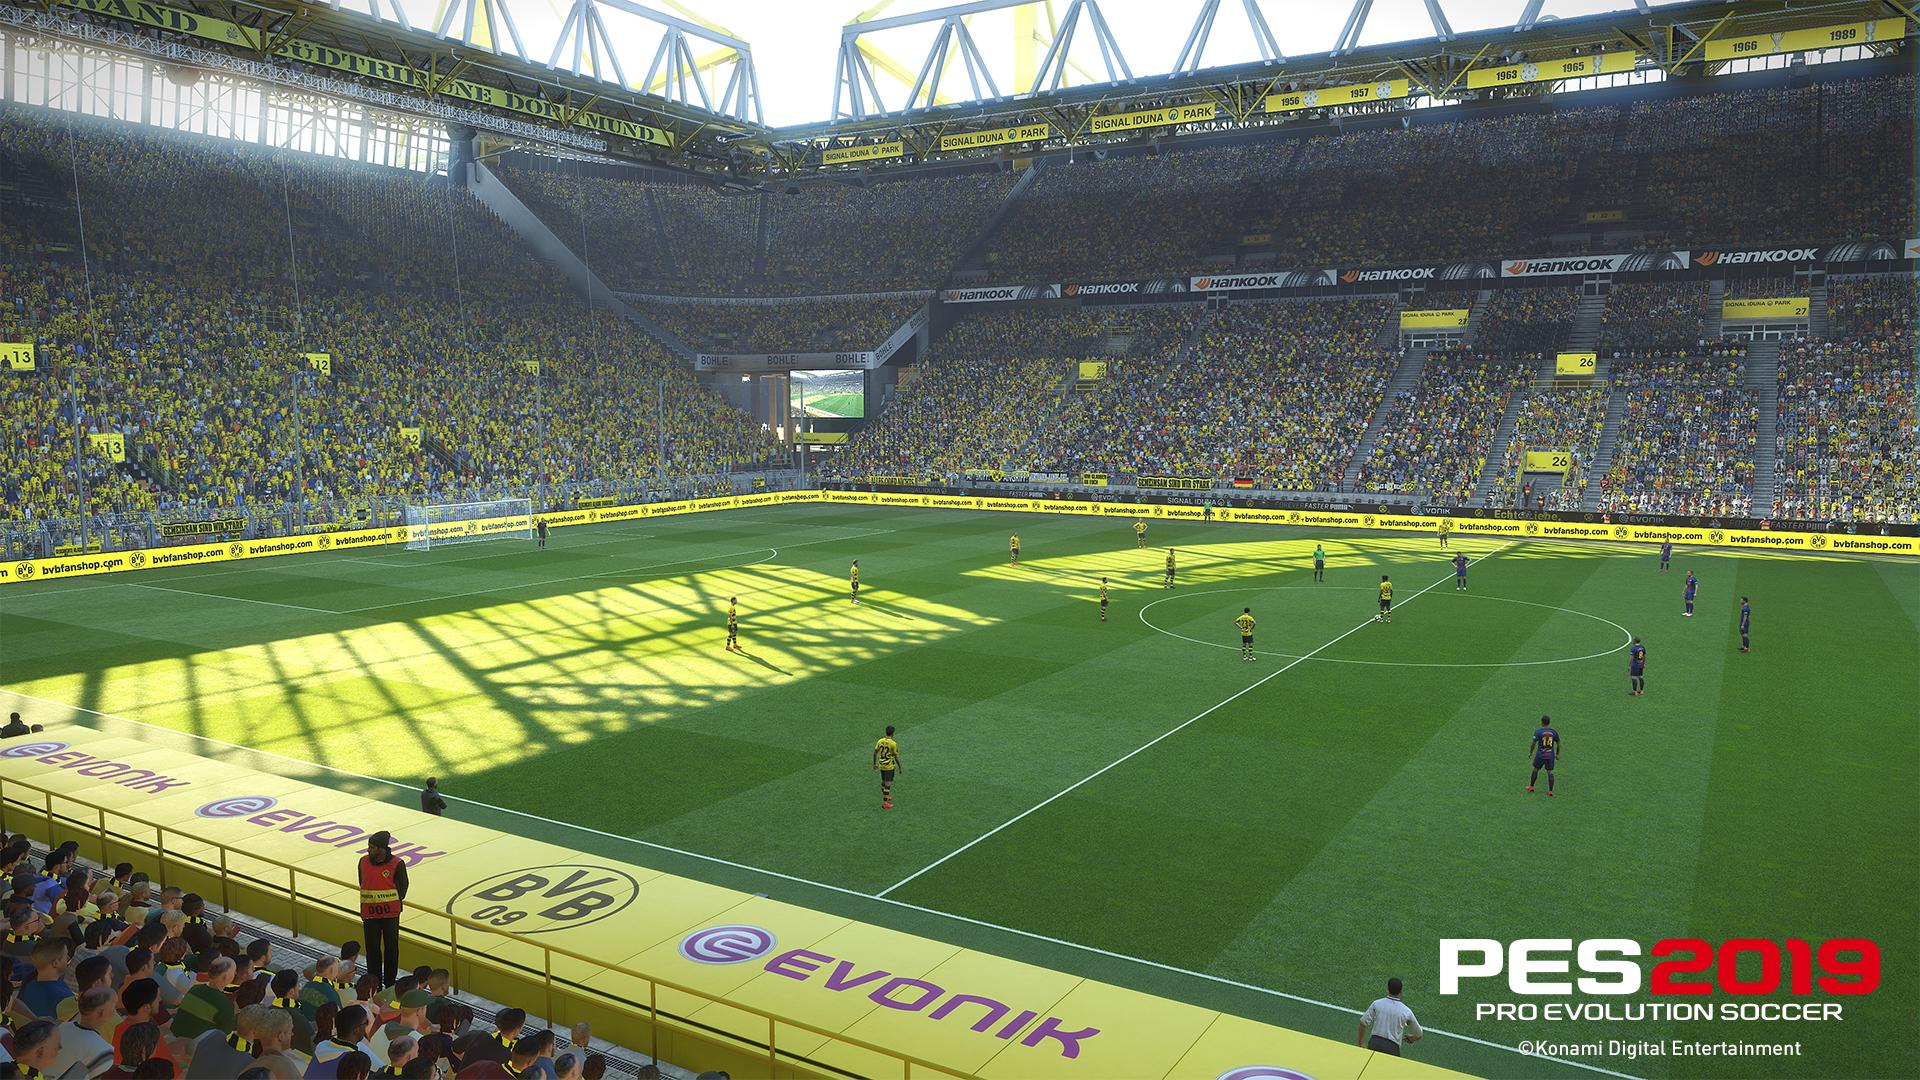 PES 2019 graphics have been significant improved since the last game